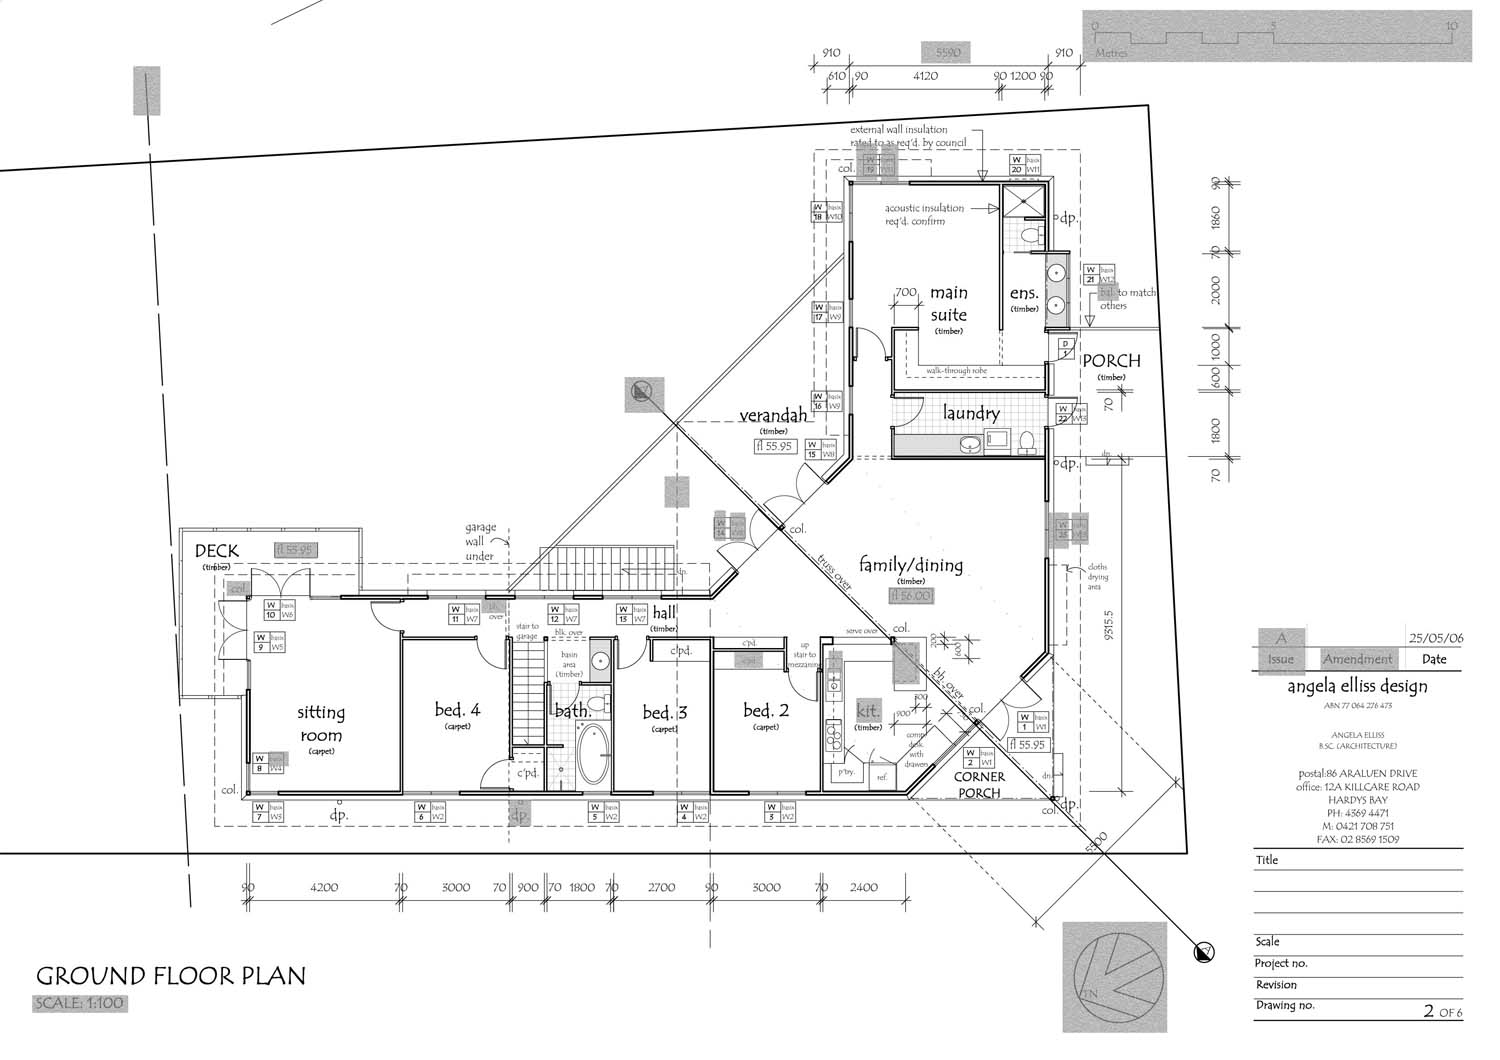 How to read house construction plans House layout design